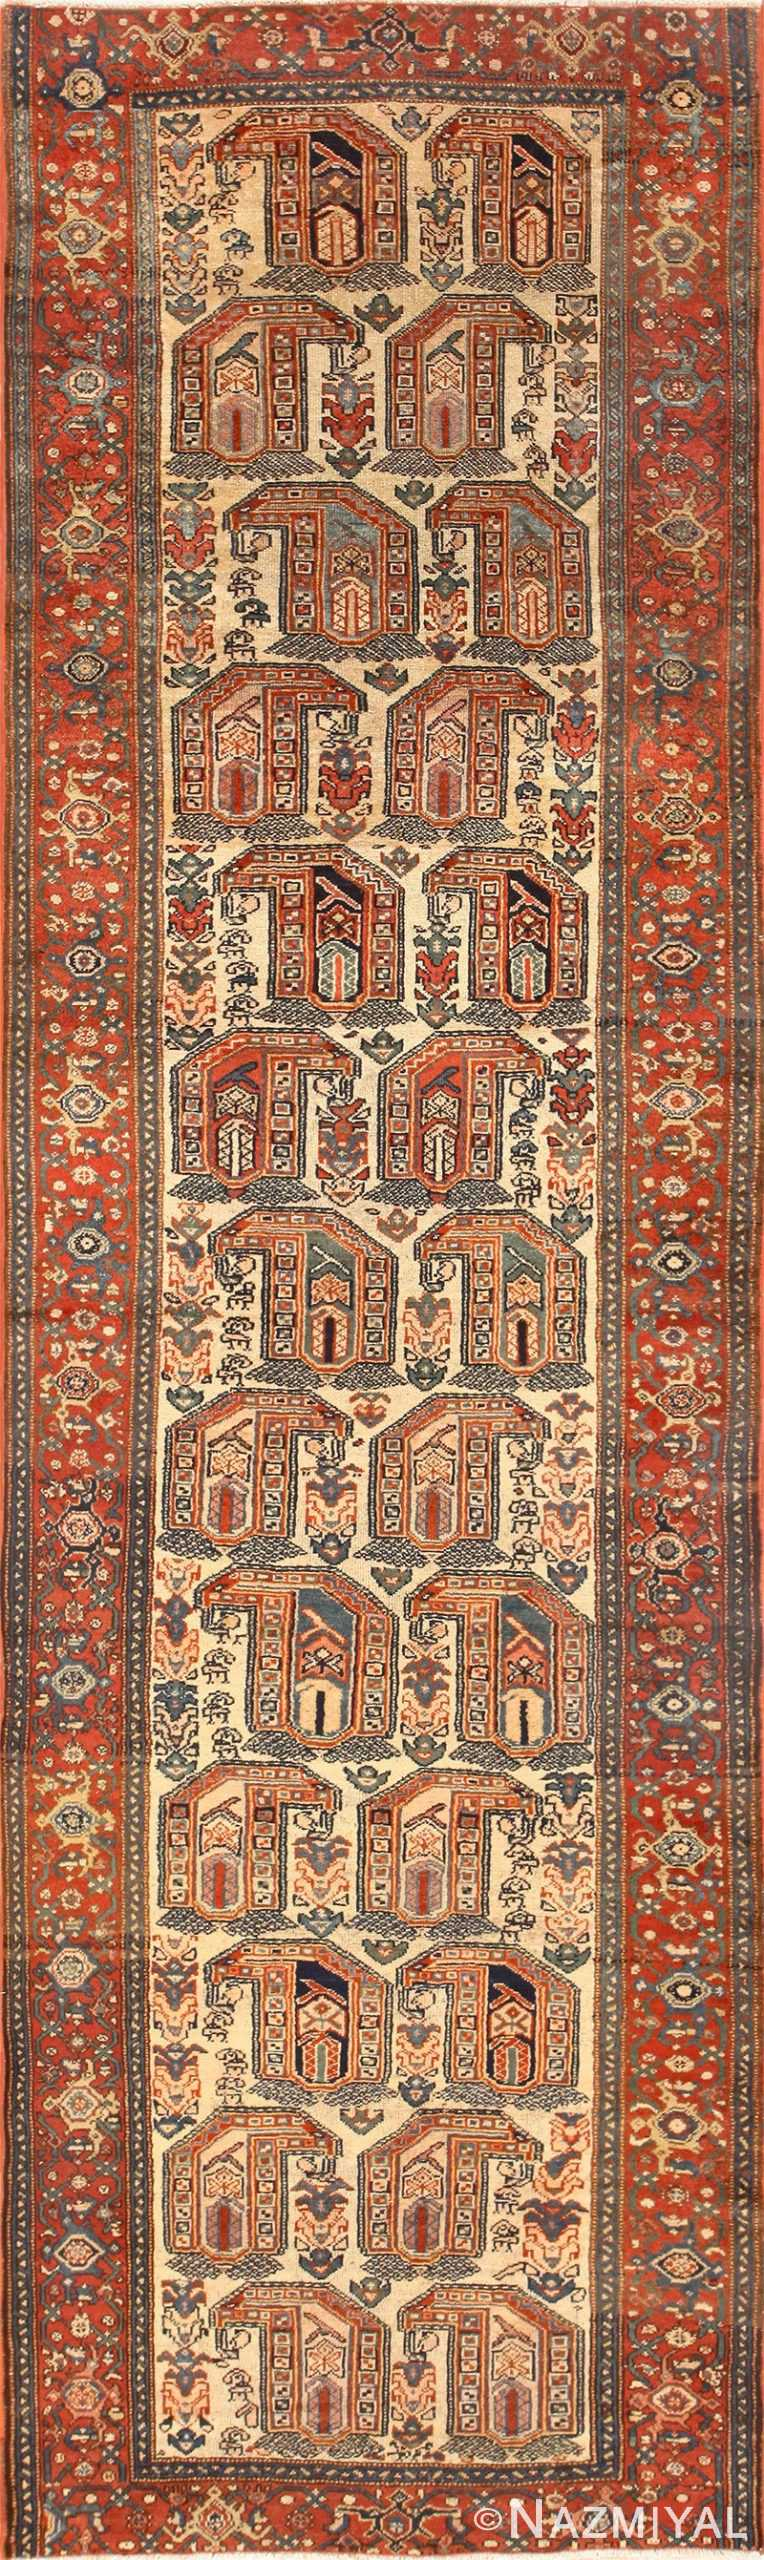 Antique Persian Malayer Runner Rug 50499 Nazmiyal